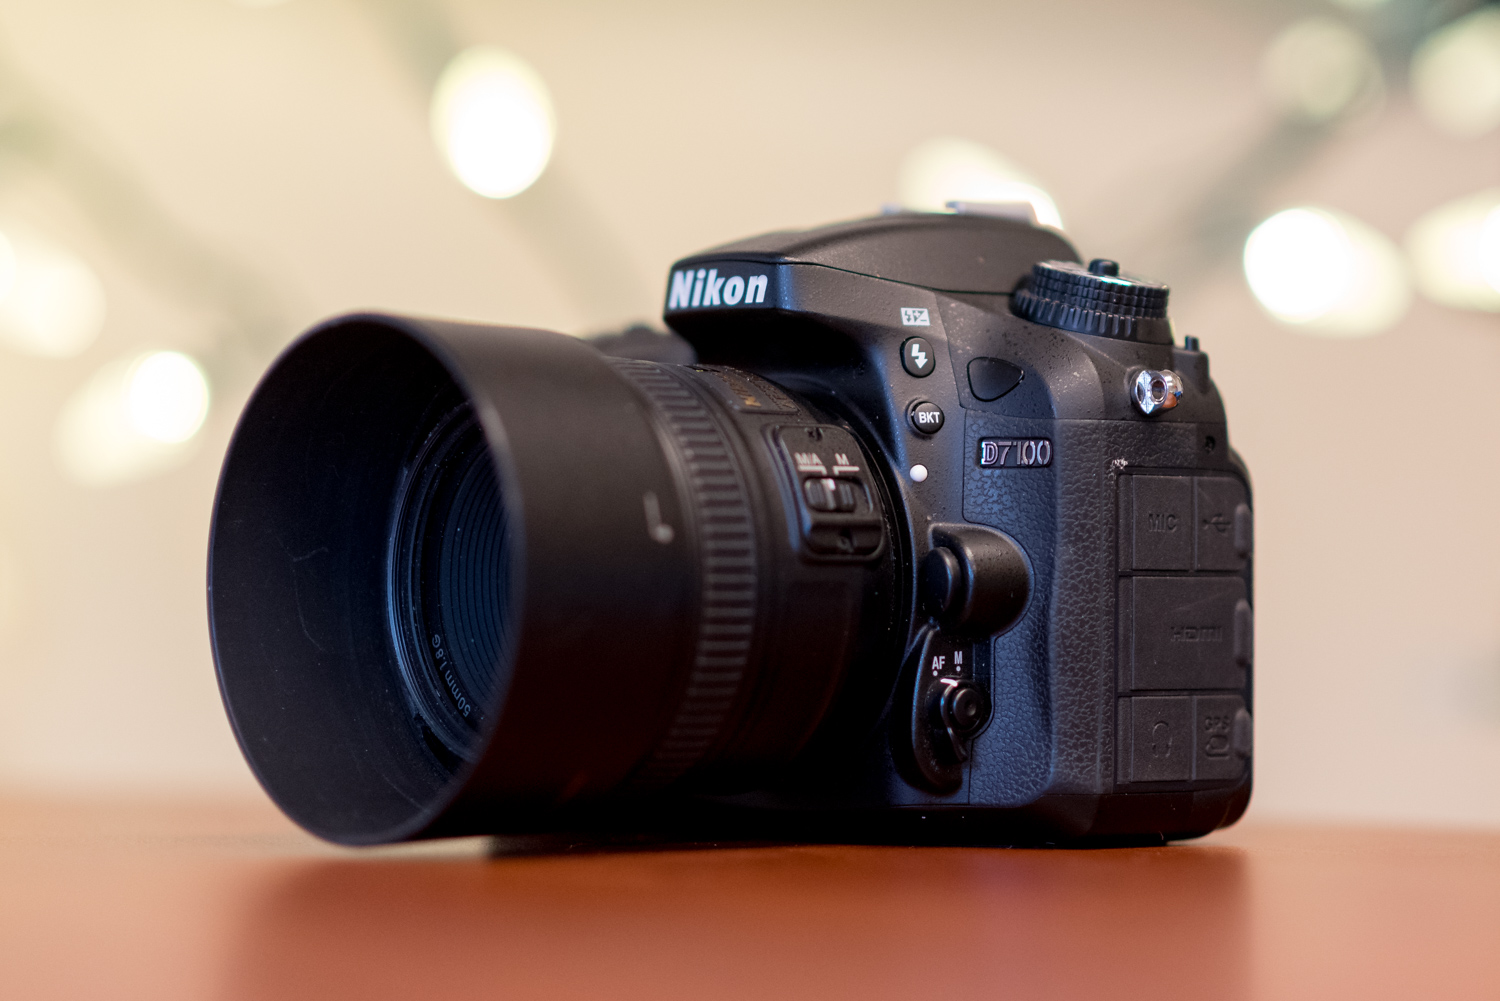 https://i1.wp.com/digital-photography-school.com/wp-content/uploads/2019/12/dslrs-arent-dead-nikon-d7100-table.jpg?resize=1500%2C1001&ssl=1